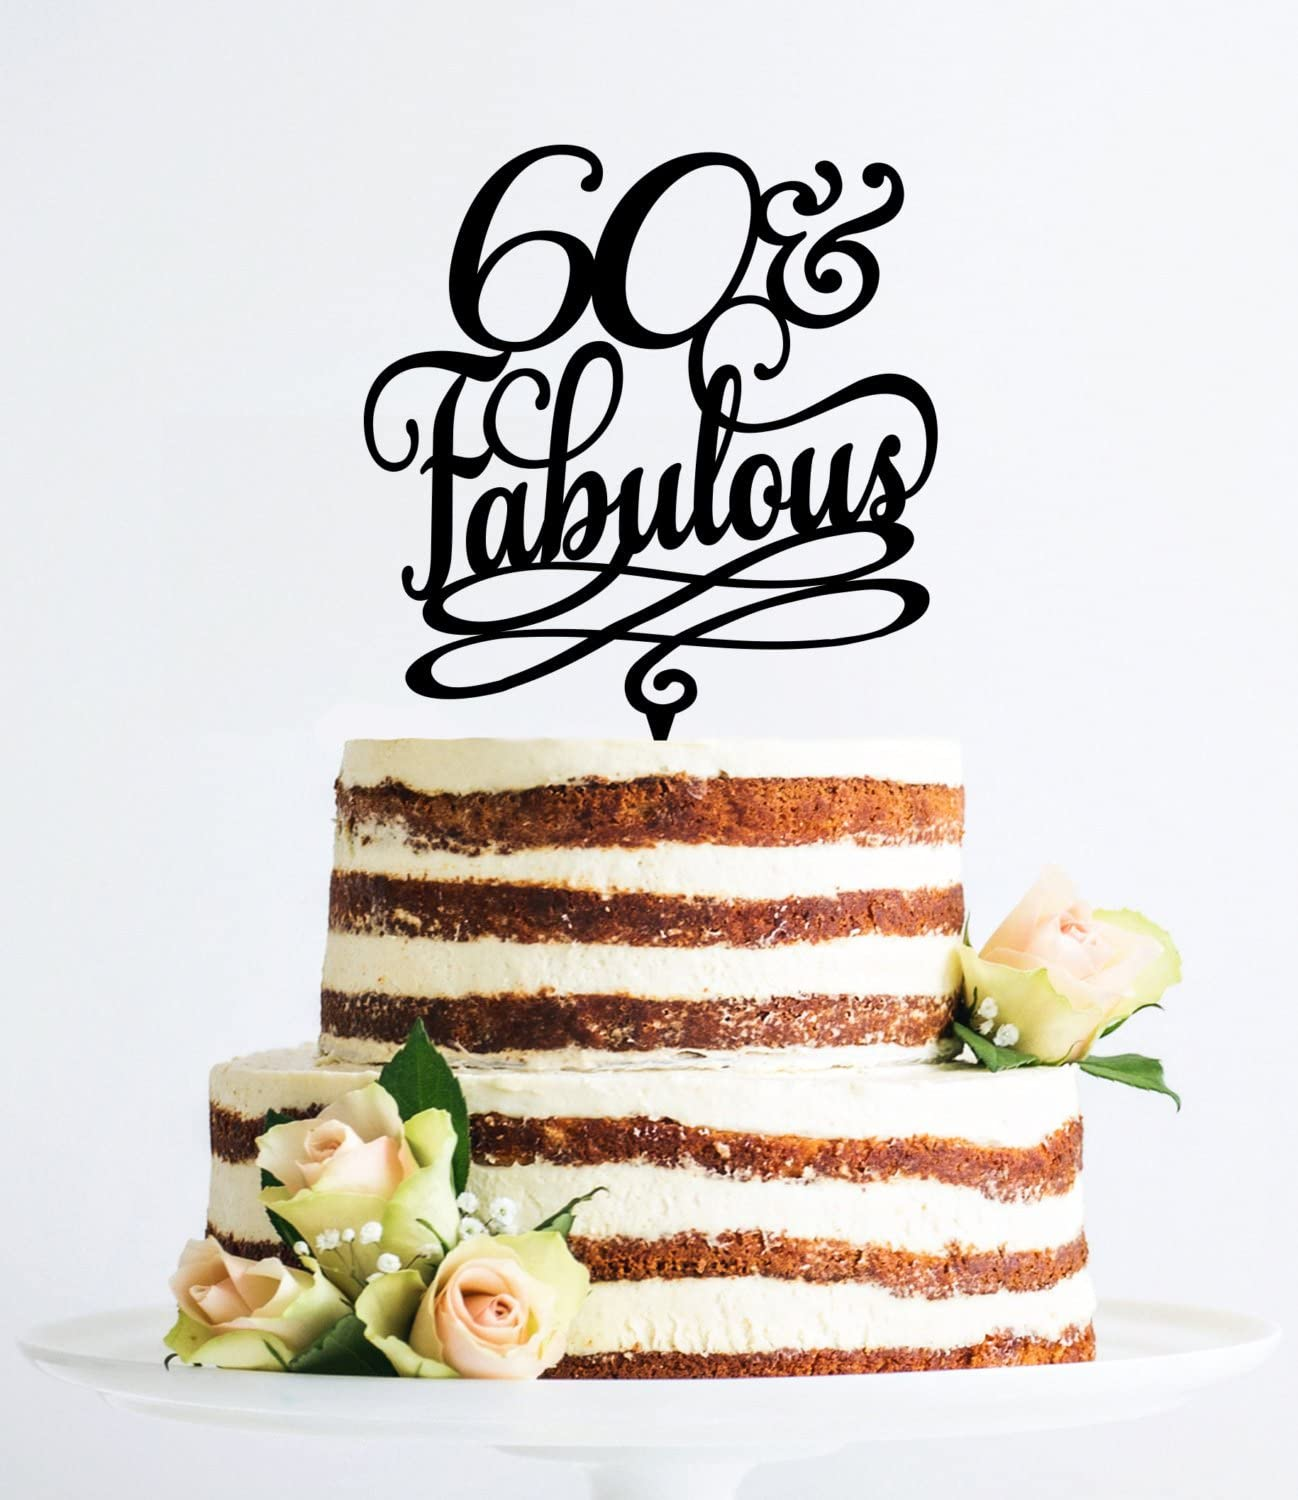 Phenomenal Qidushop 60 And Fabulous Birthday Cake Topper For Women Classy Funny Birthday Cards Online Bapapcheapnameinfo